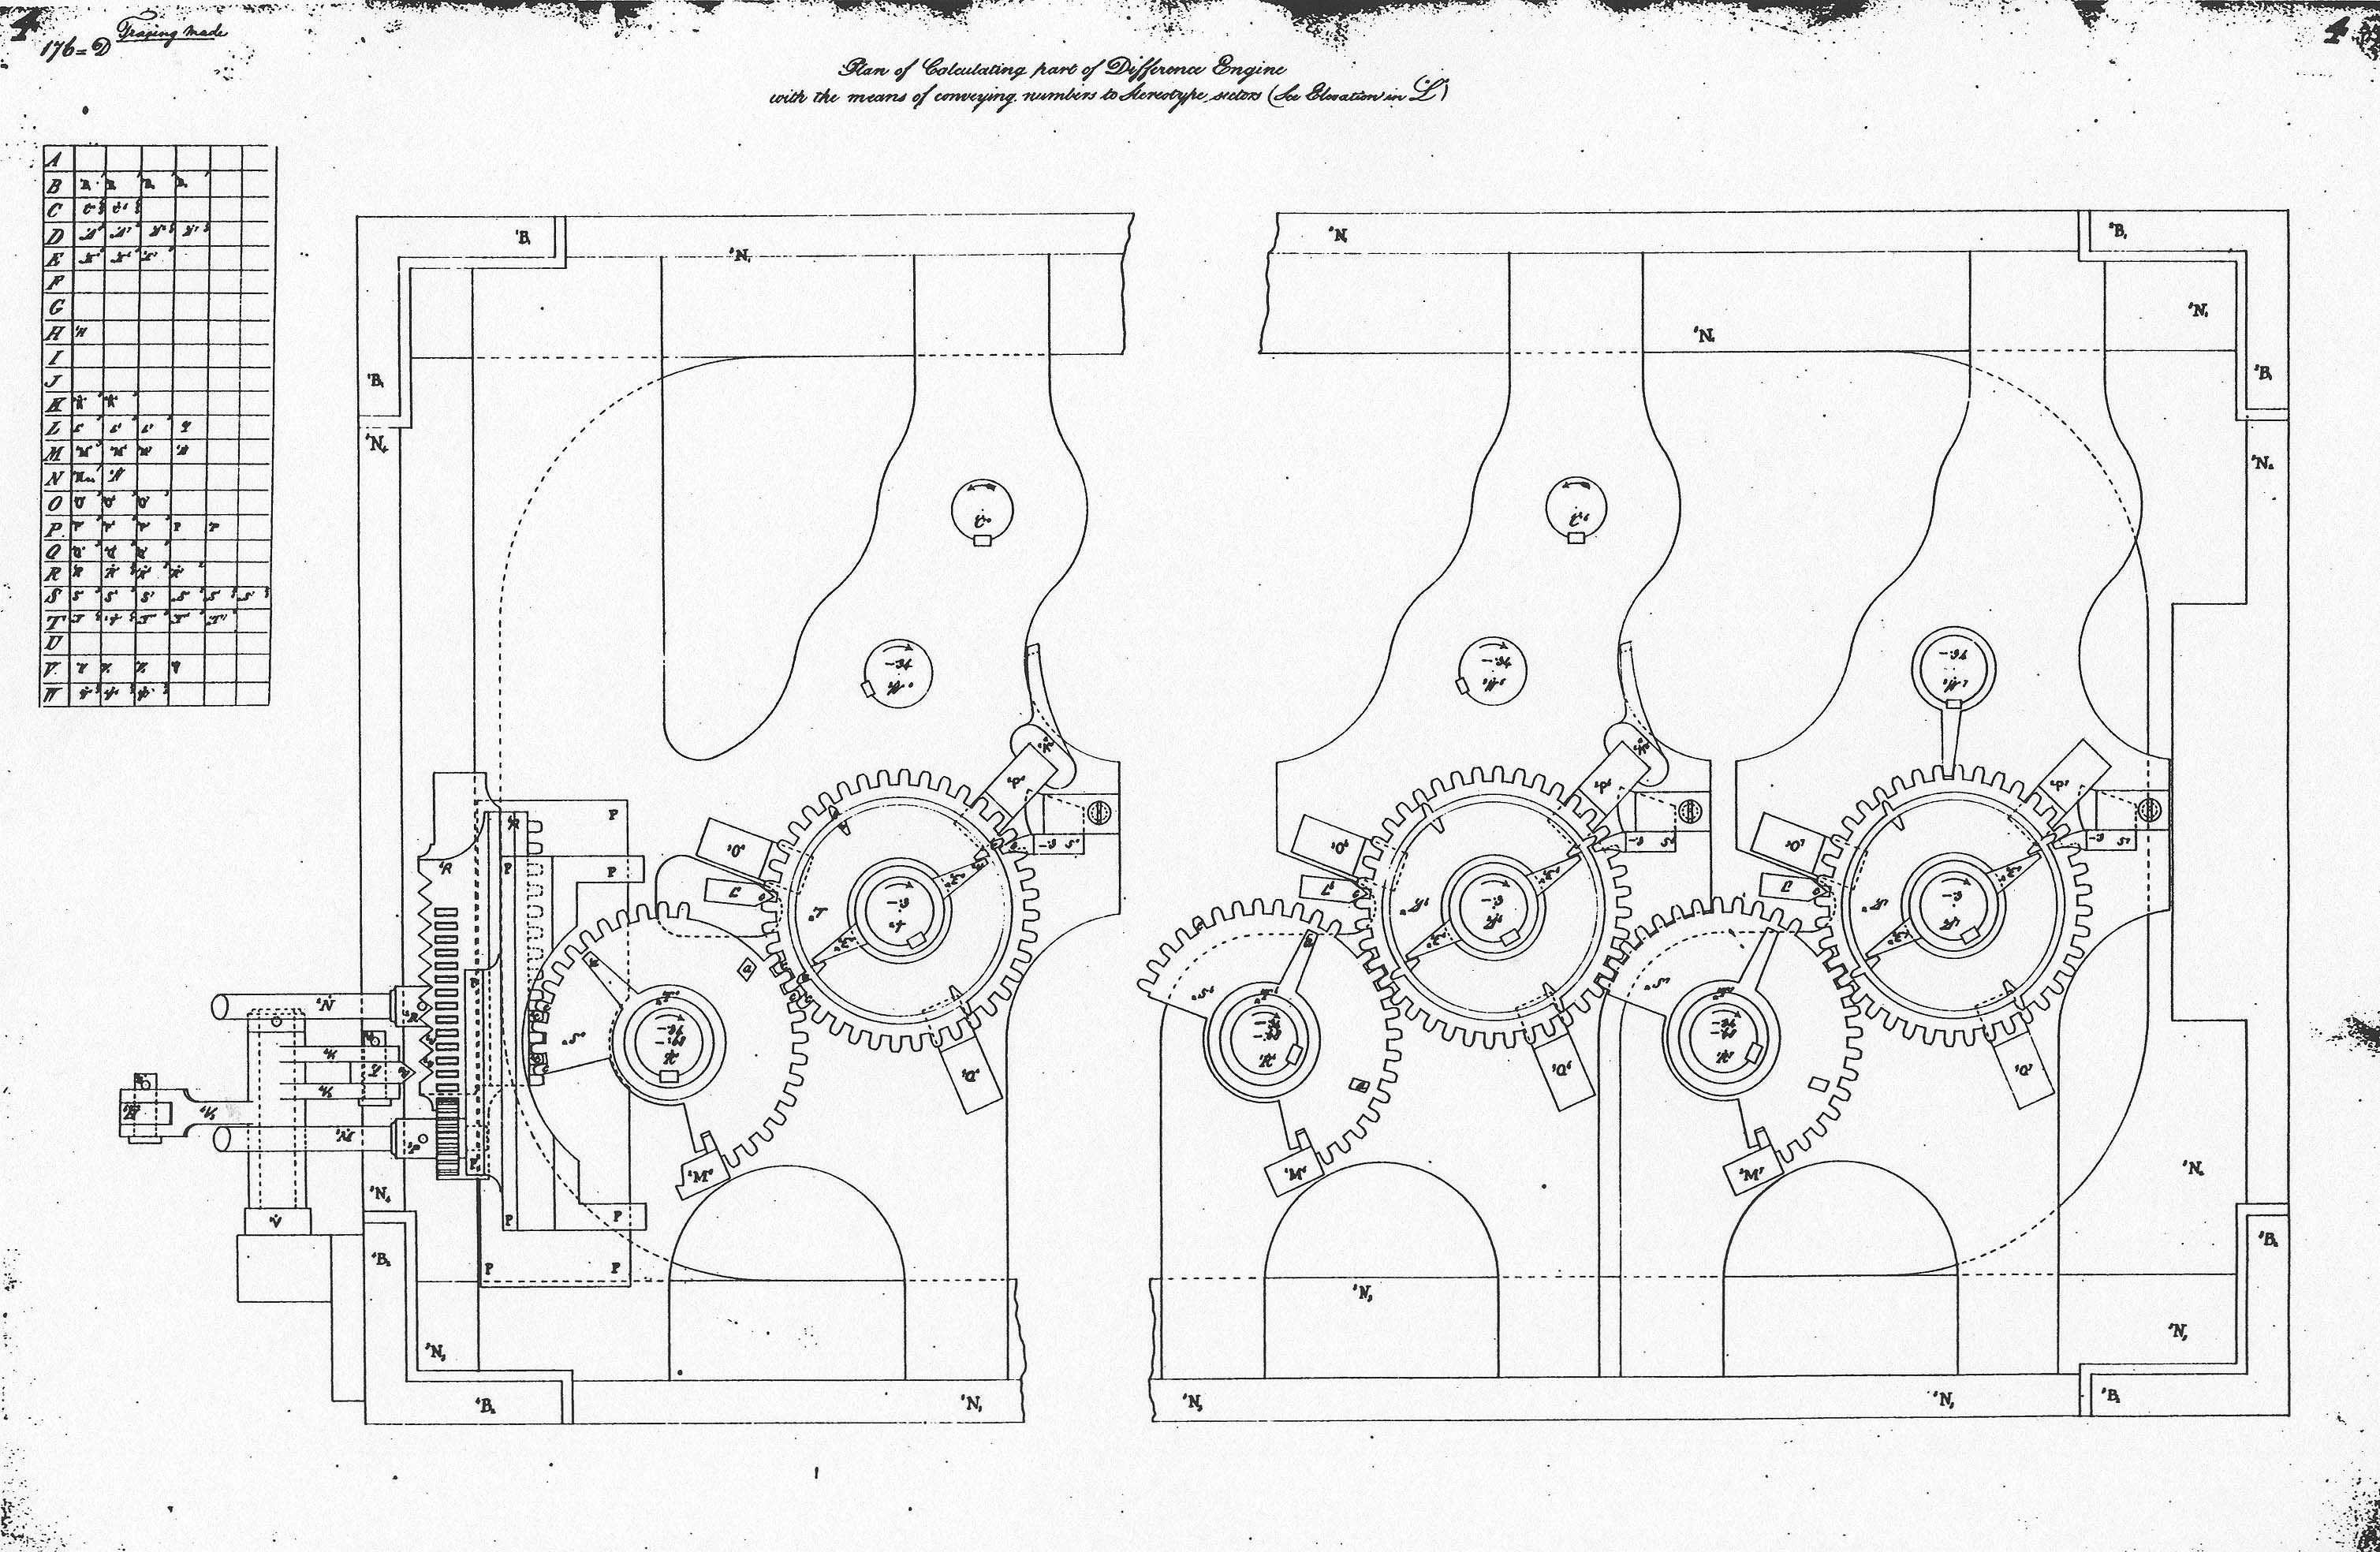 Difference Engine Diagram Auto Electrical Wiring Humvee Harness Schematics Related With Monsoon Amp